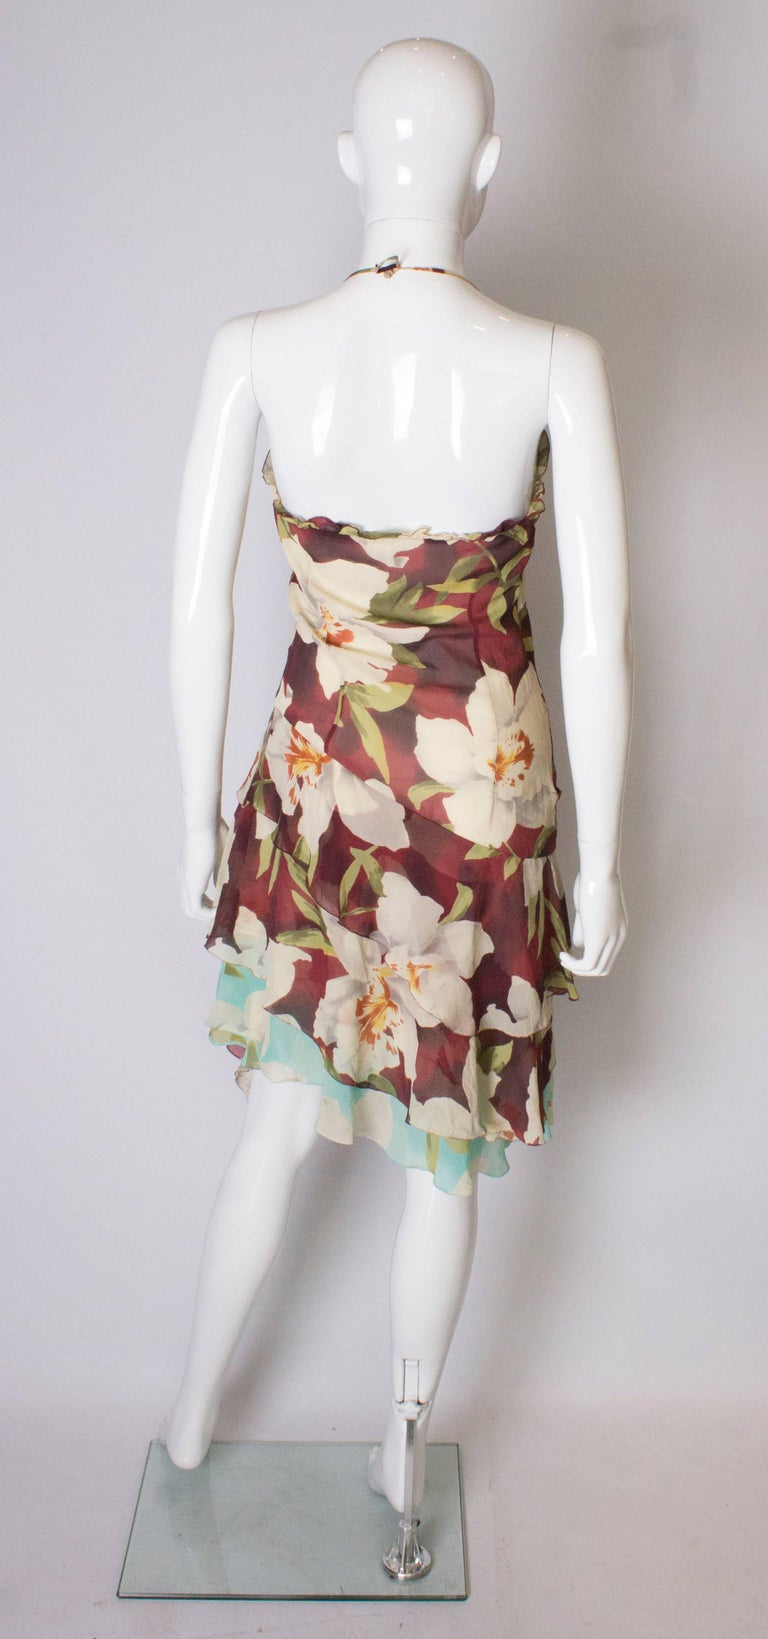 A vintage 1990s floral pinted silk party dress by Cacharel  For Sale 2